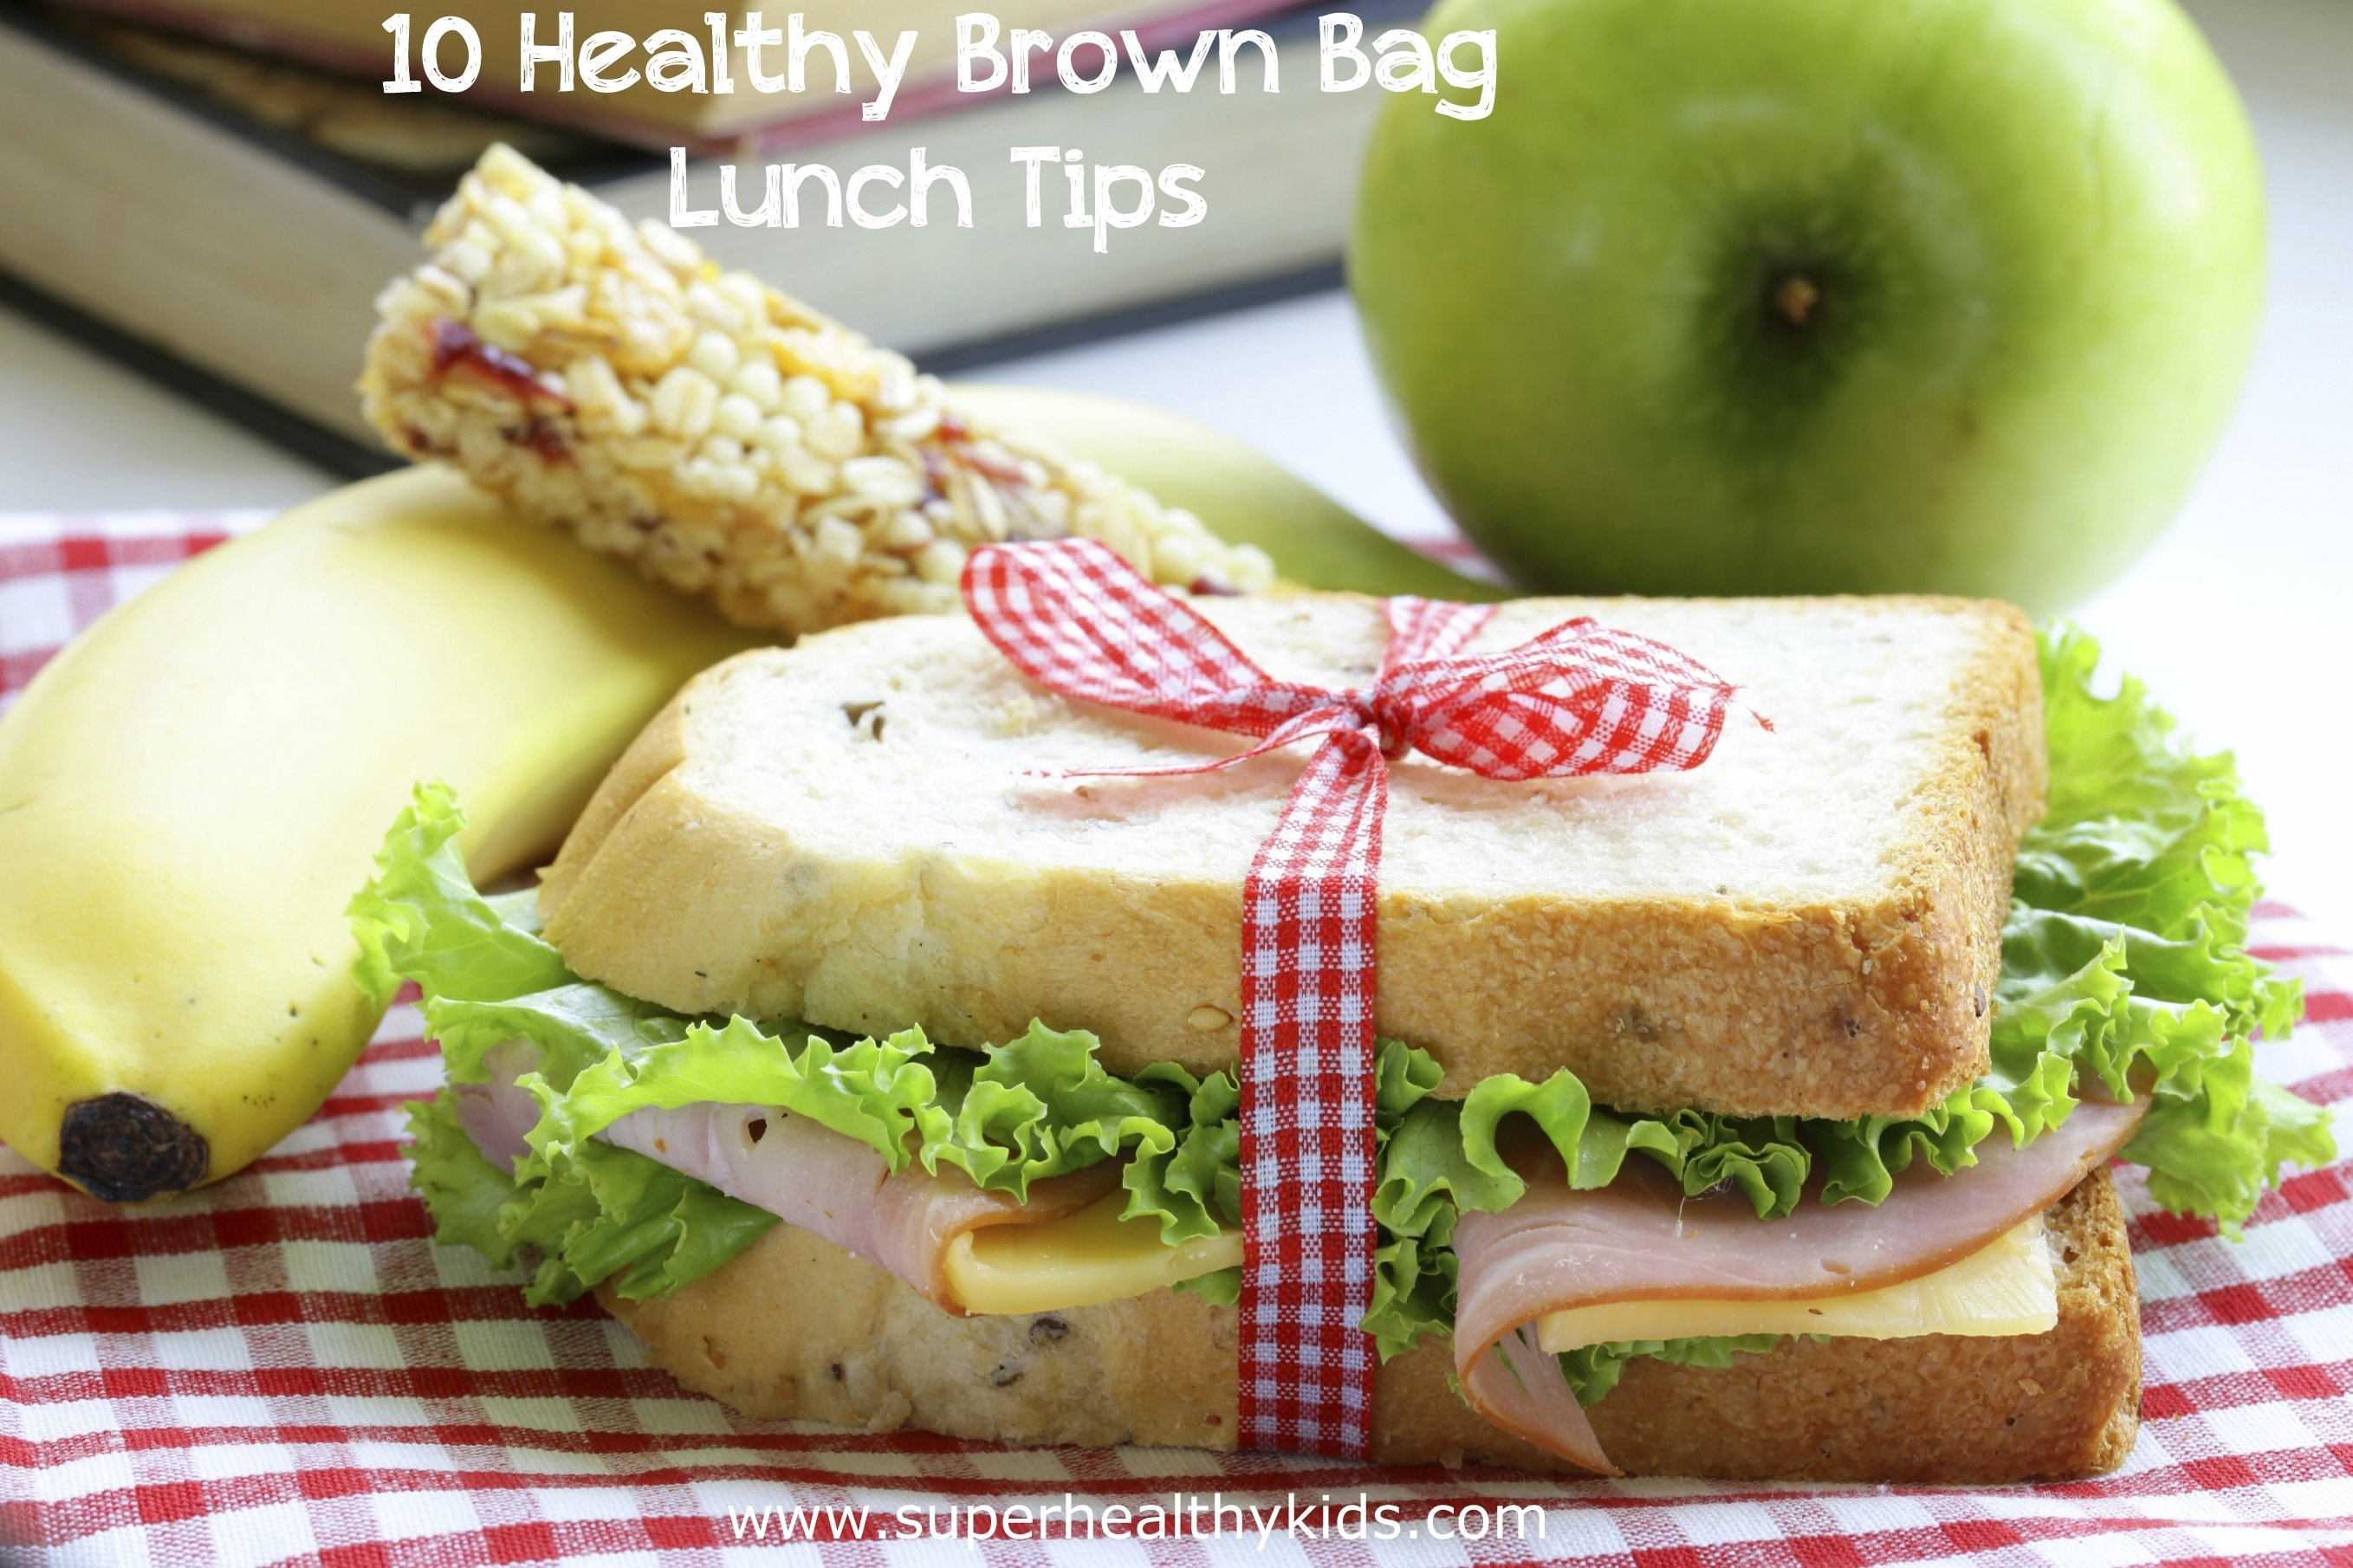 10 Beautiful Healthy Brown Bag Lunch Ideas 10 healthy brown bag lunch tips healthy ideas for kids 1 2021